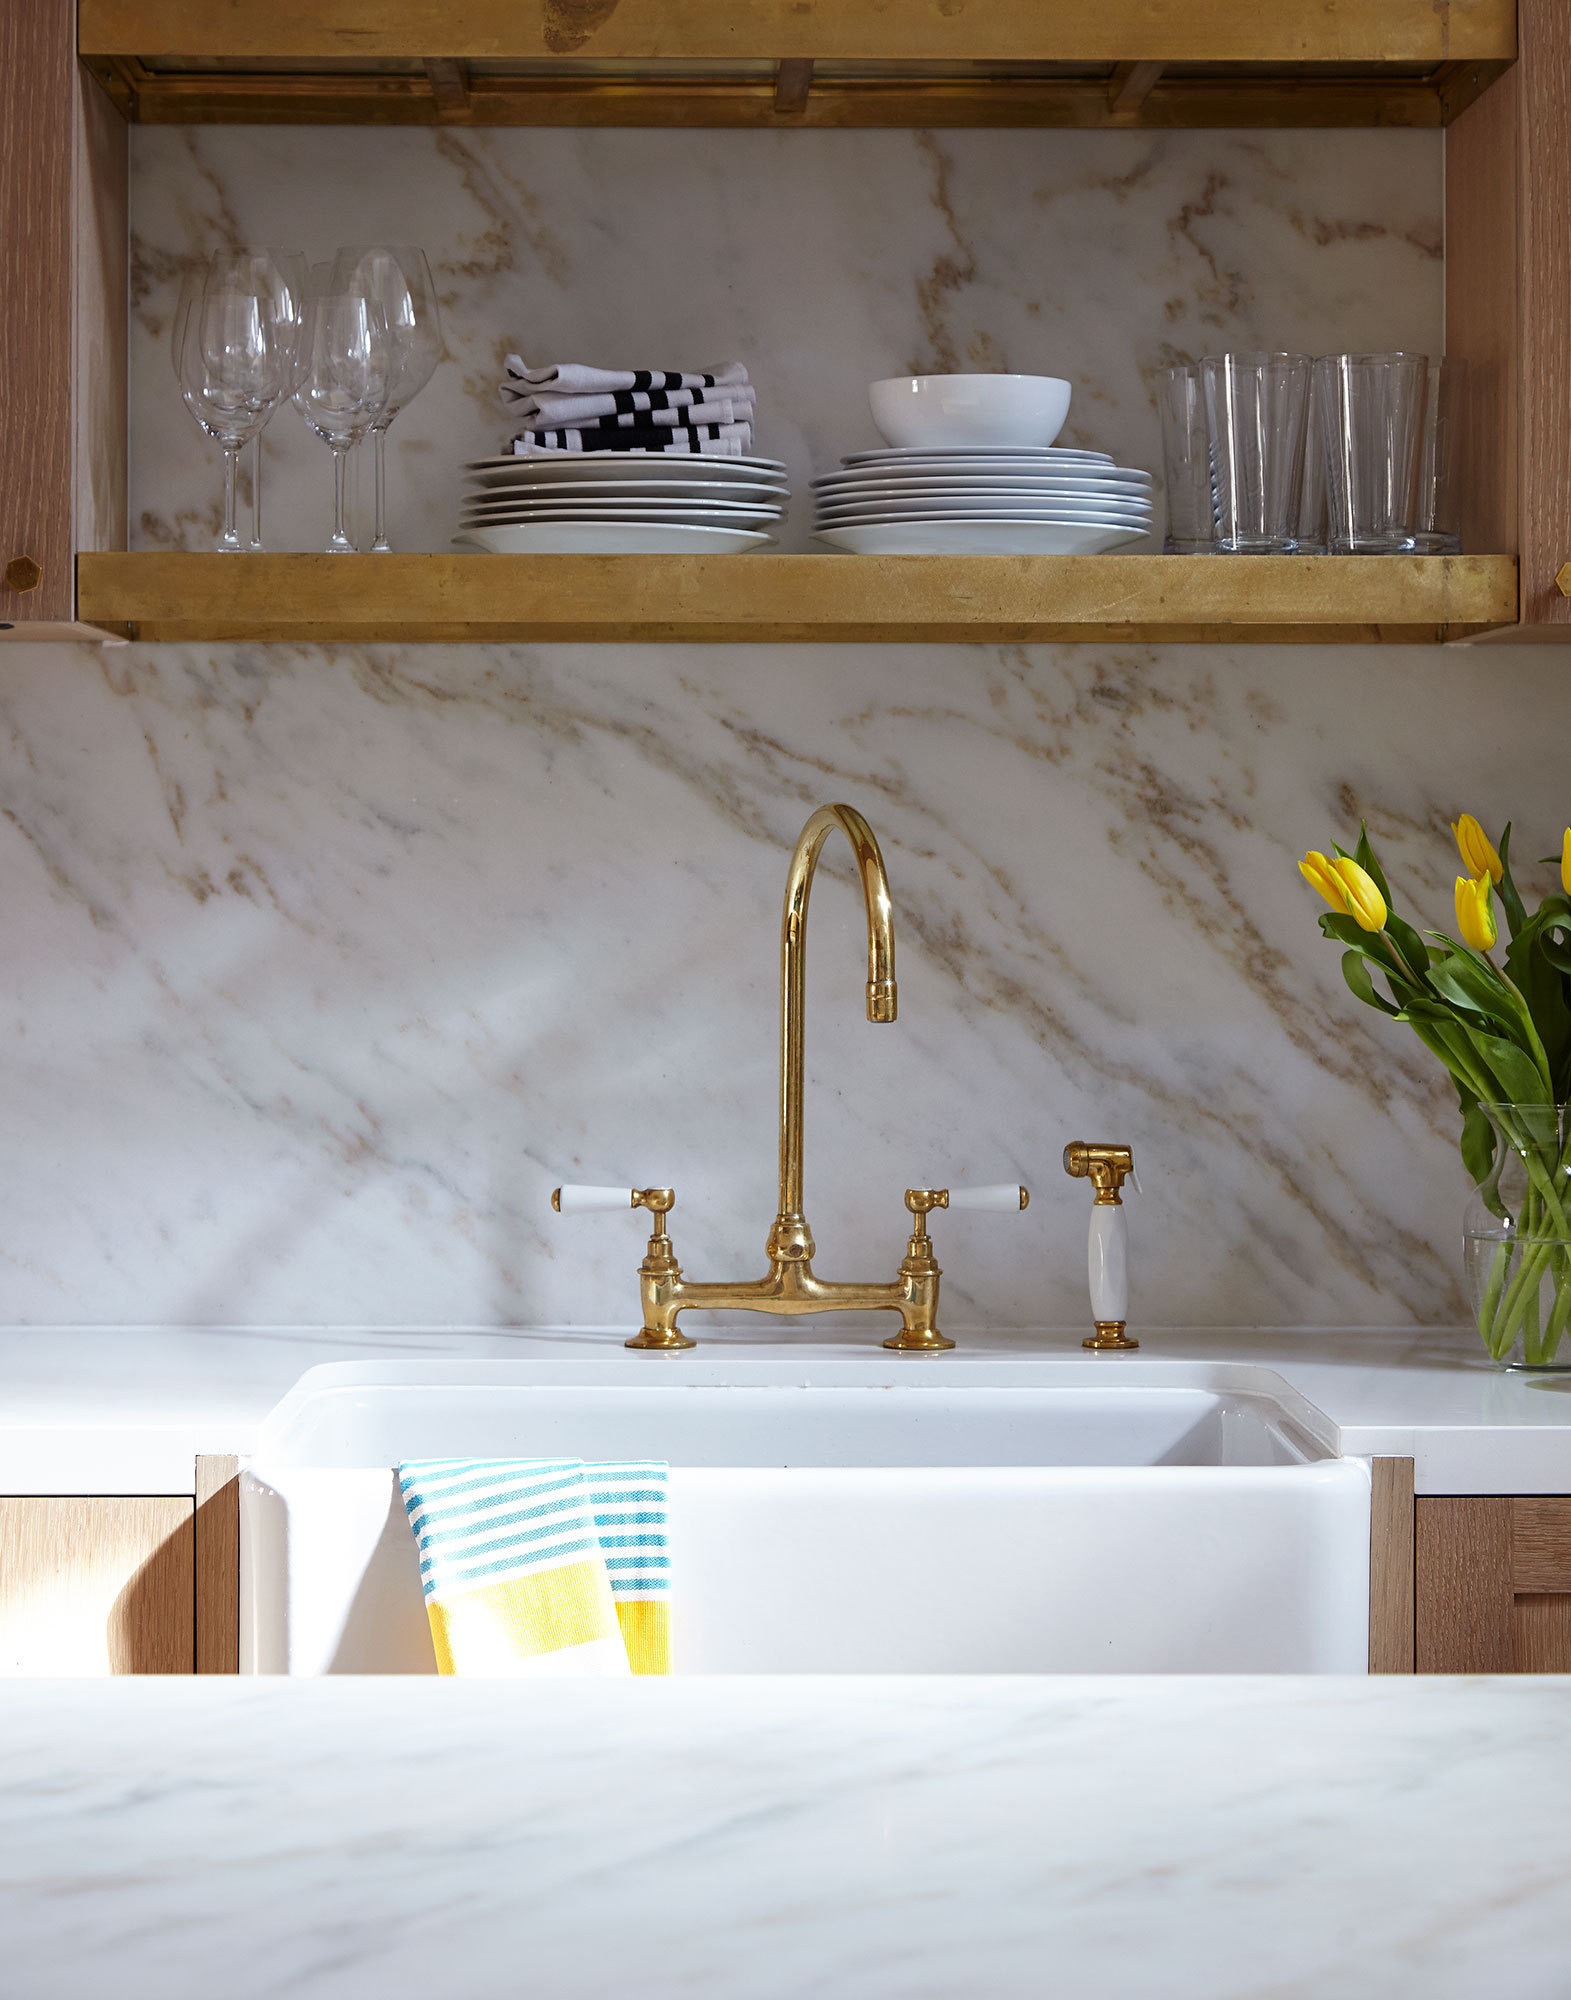 A brass-and-ceramic faucet by Barber Wilsons and Rohl farmhouse sink blend with white Celador outer countertops.